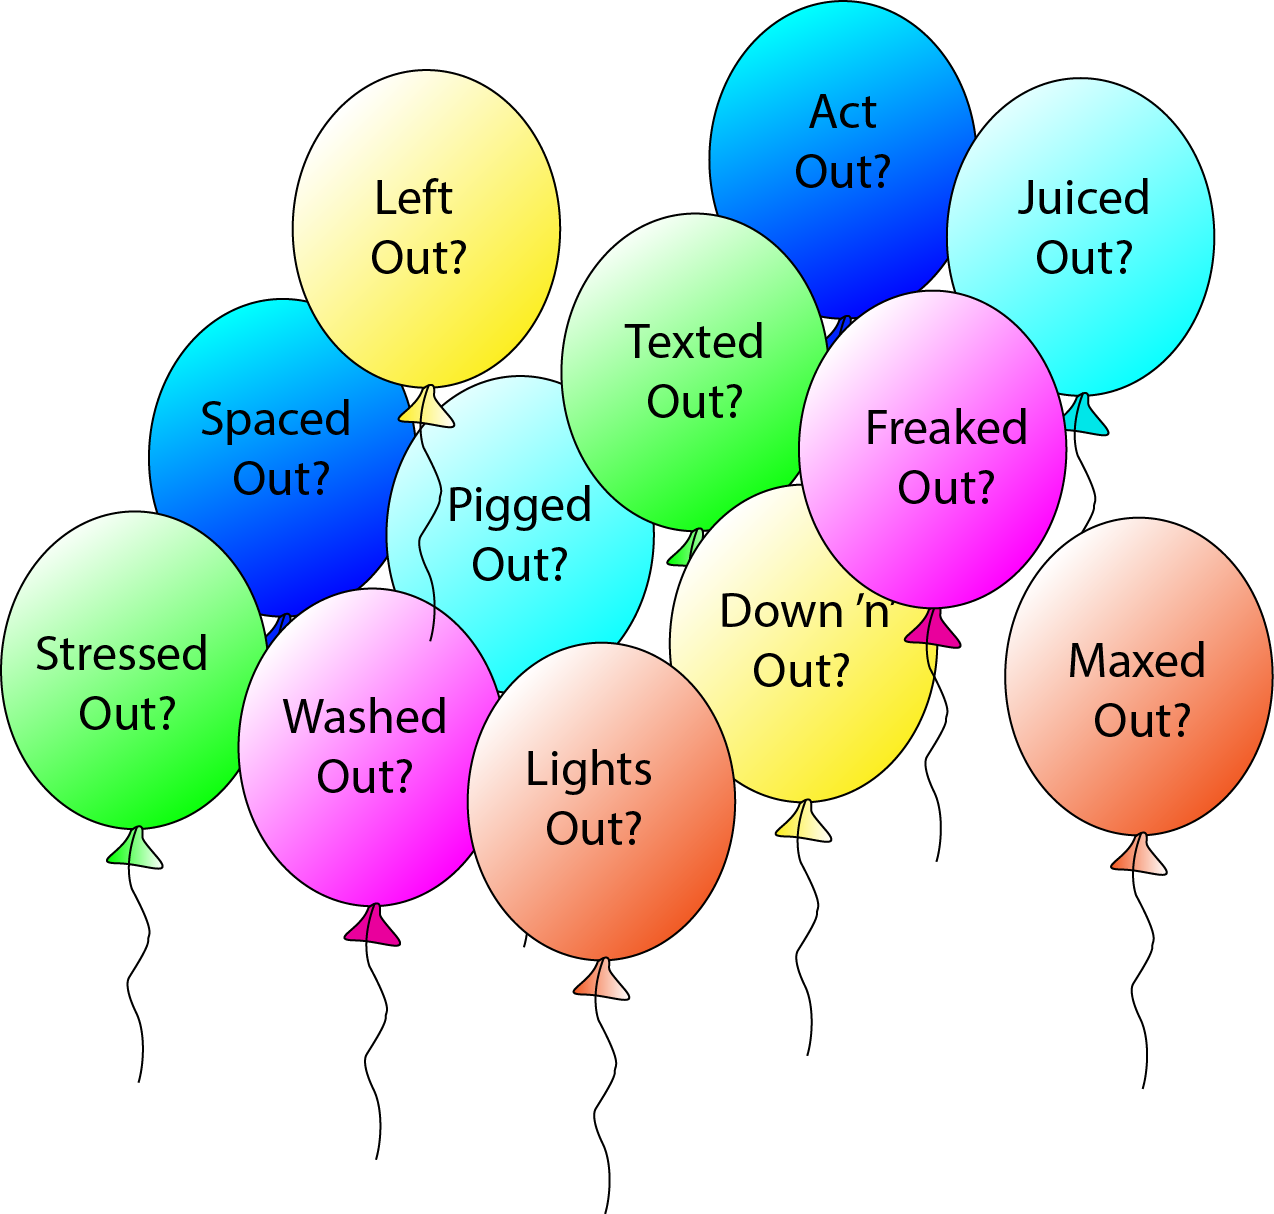 stressed out balloons